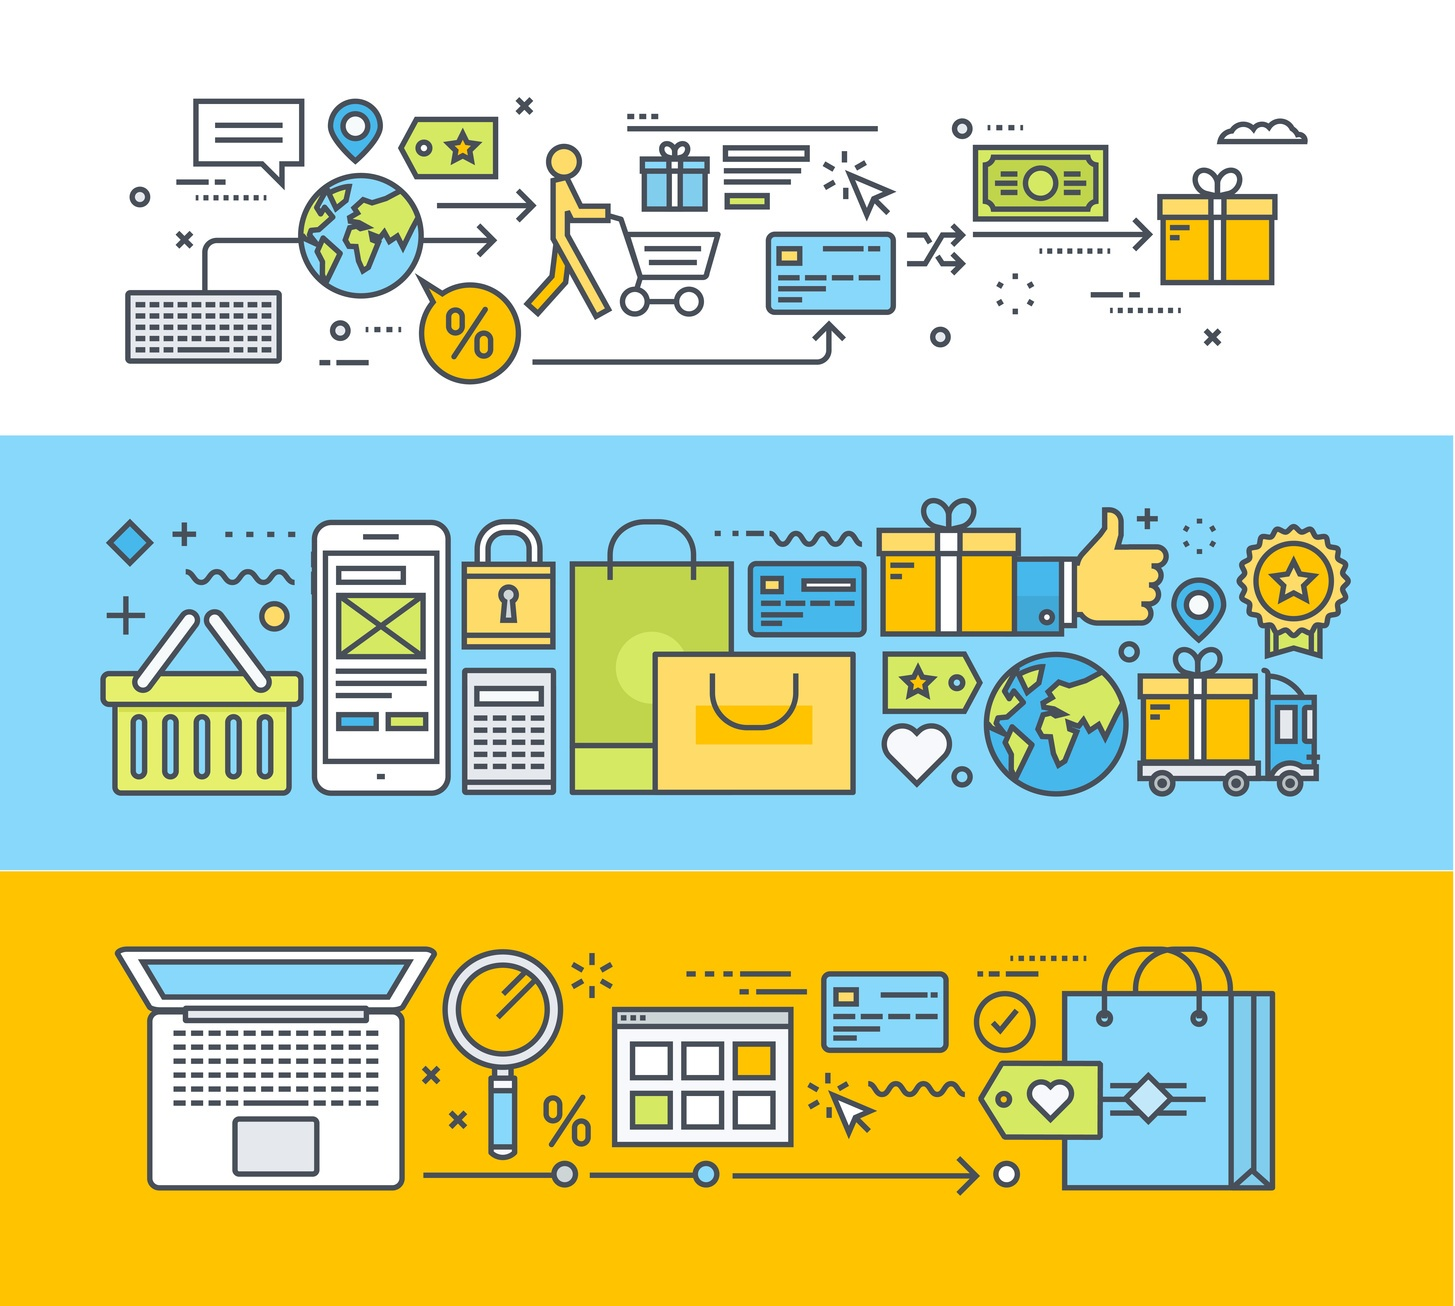 Opening an e-commerce depends on more than just suppliers, but rather on great partners